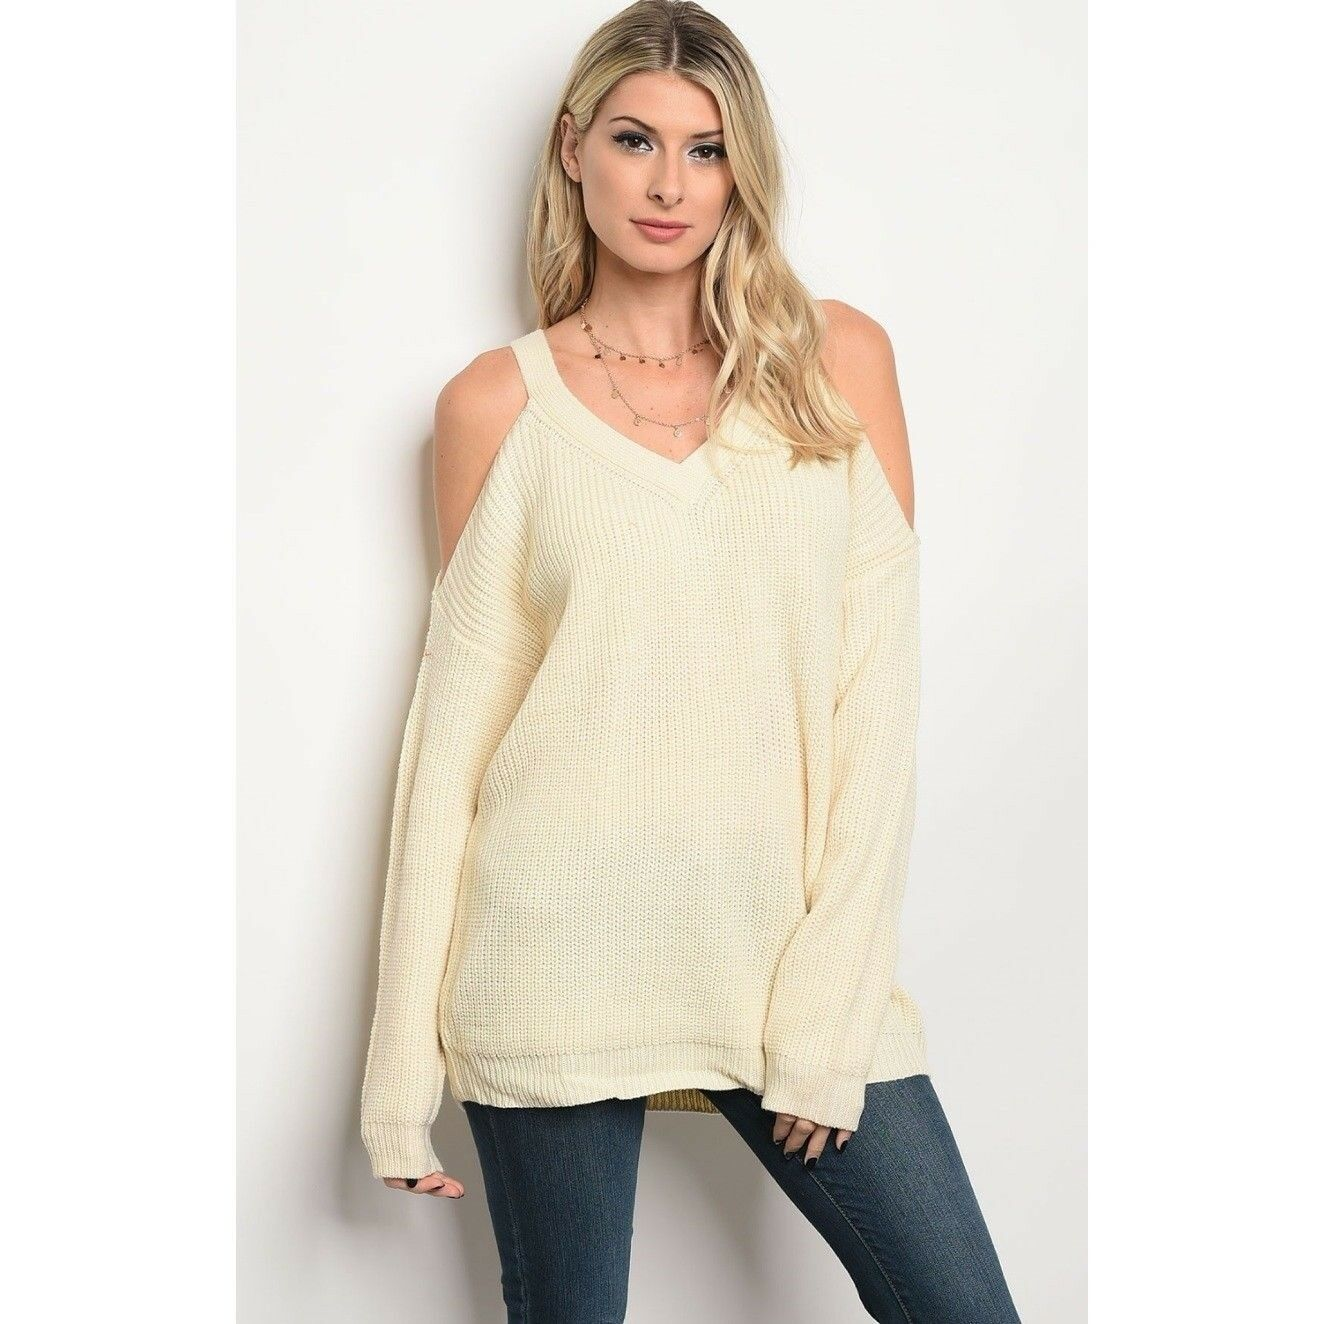 Boutique Chunky Knit Sexy Cold Shoulder Sweater Tunic New S M L Ivory